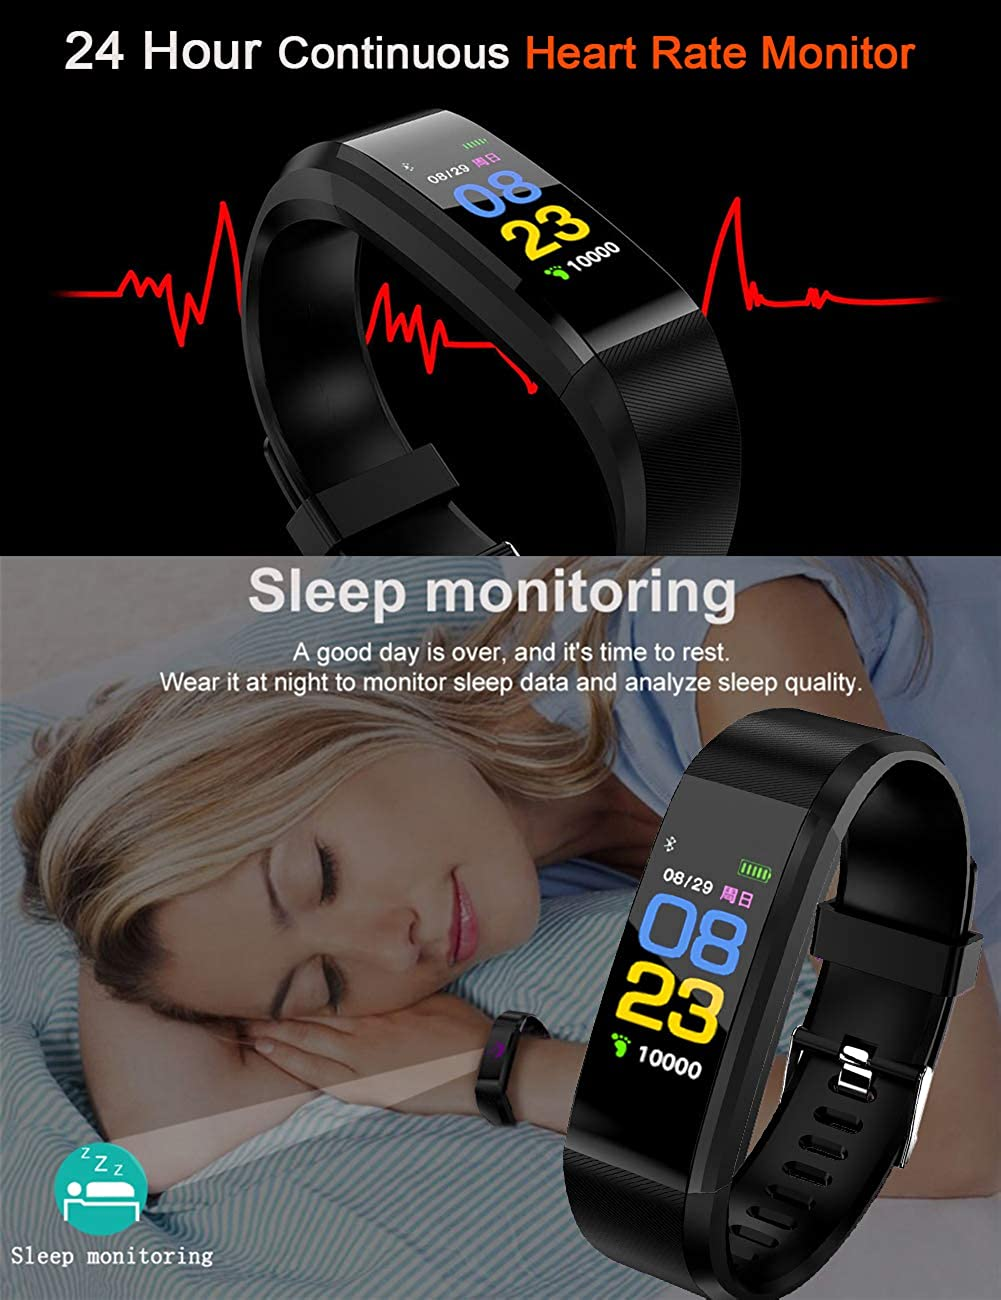 ... Tracker Watch with Heart Rate Monitor, Waterproof Smart Bracelet with Step Counter, Calorie Counter, Pedometer Watch for Kids Women and Men: Watches